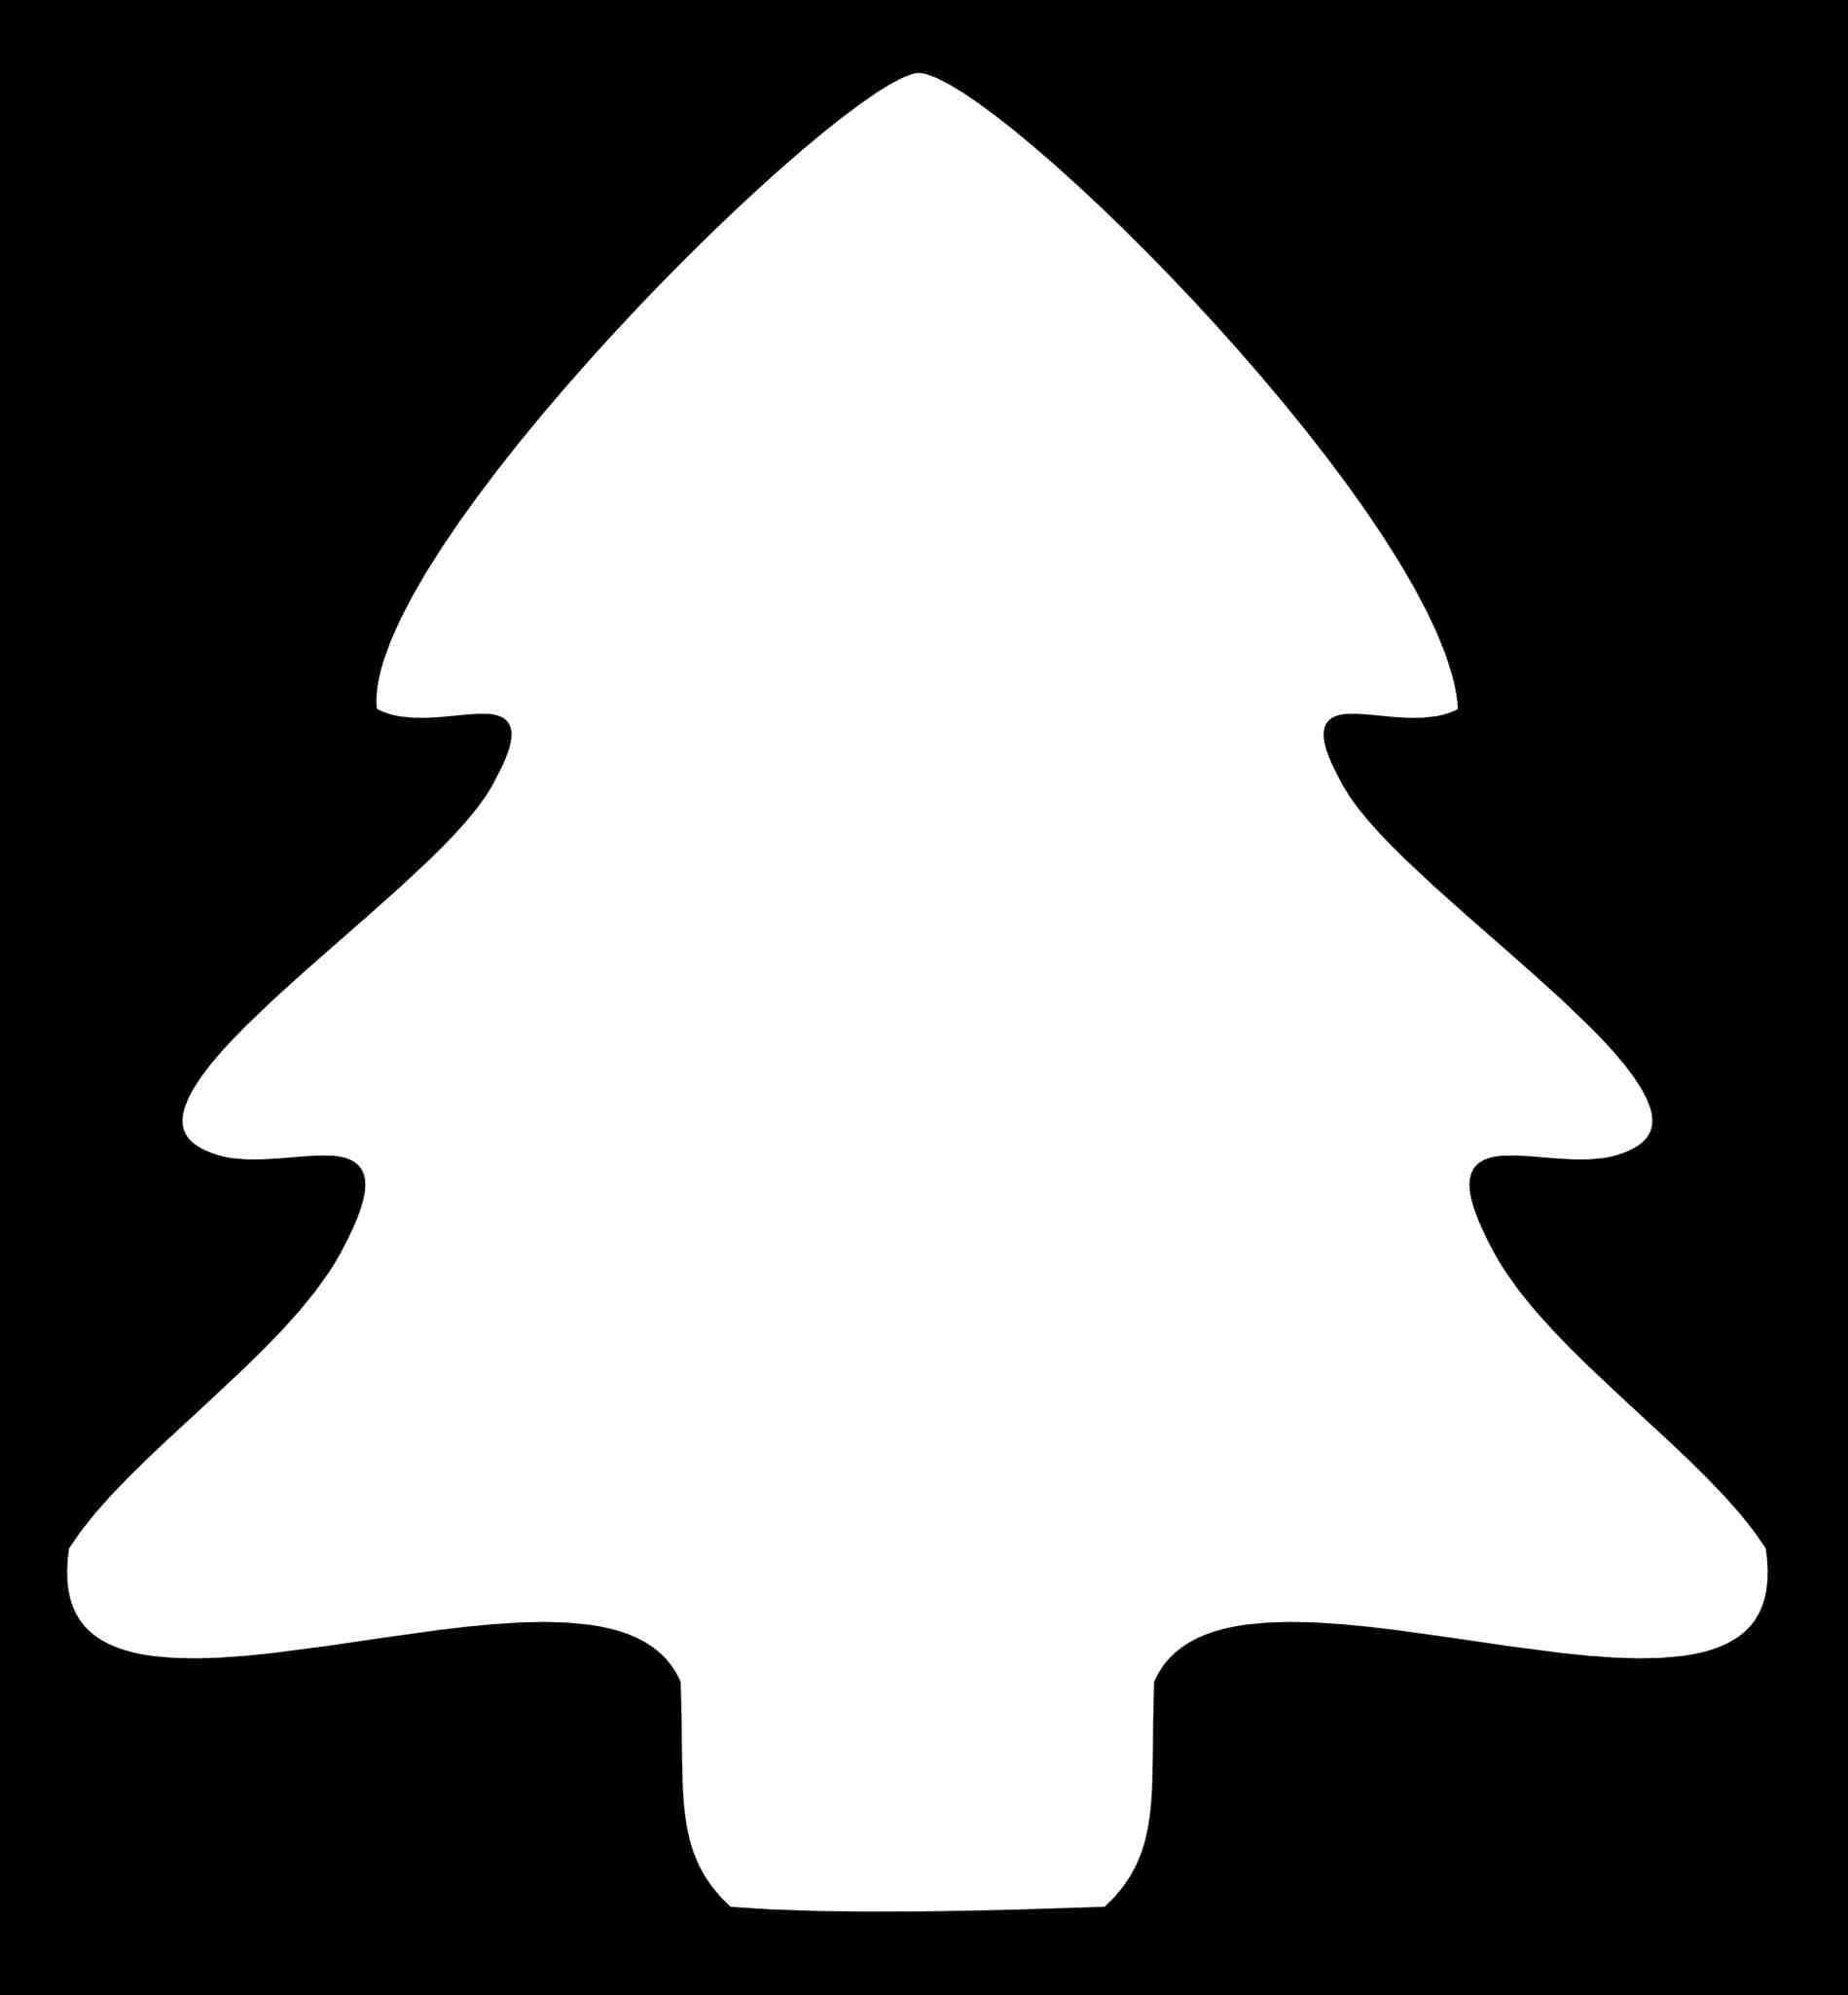 1899x2050 Christmas Tree Outline Clip Art cheminee.website